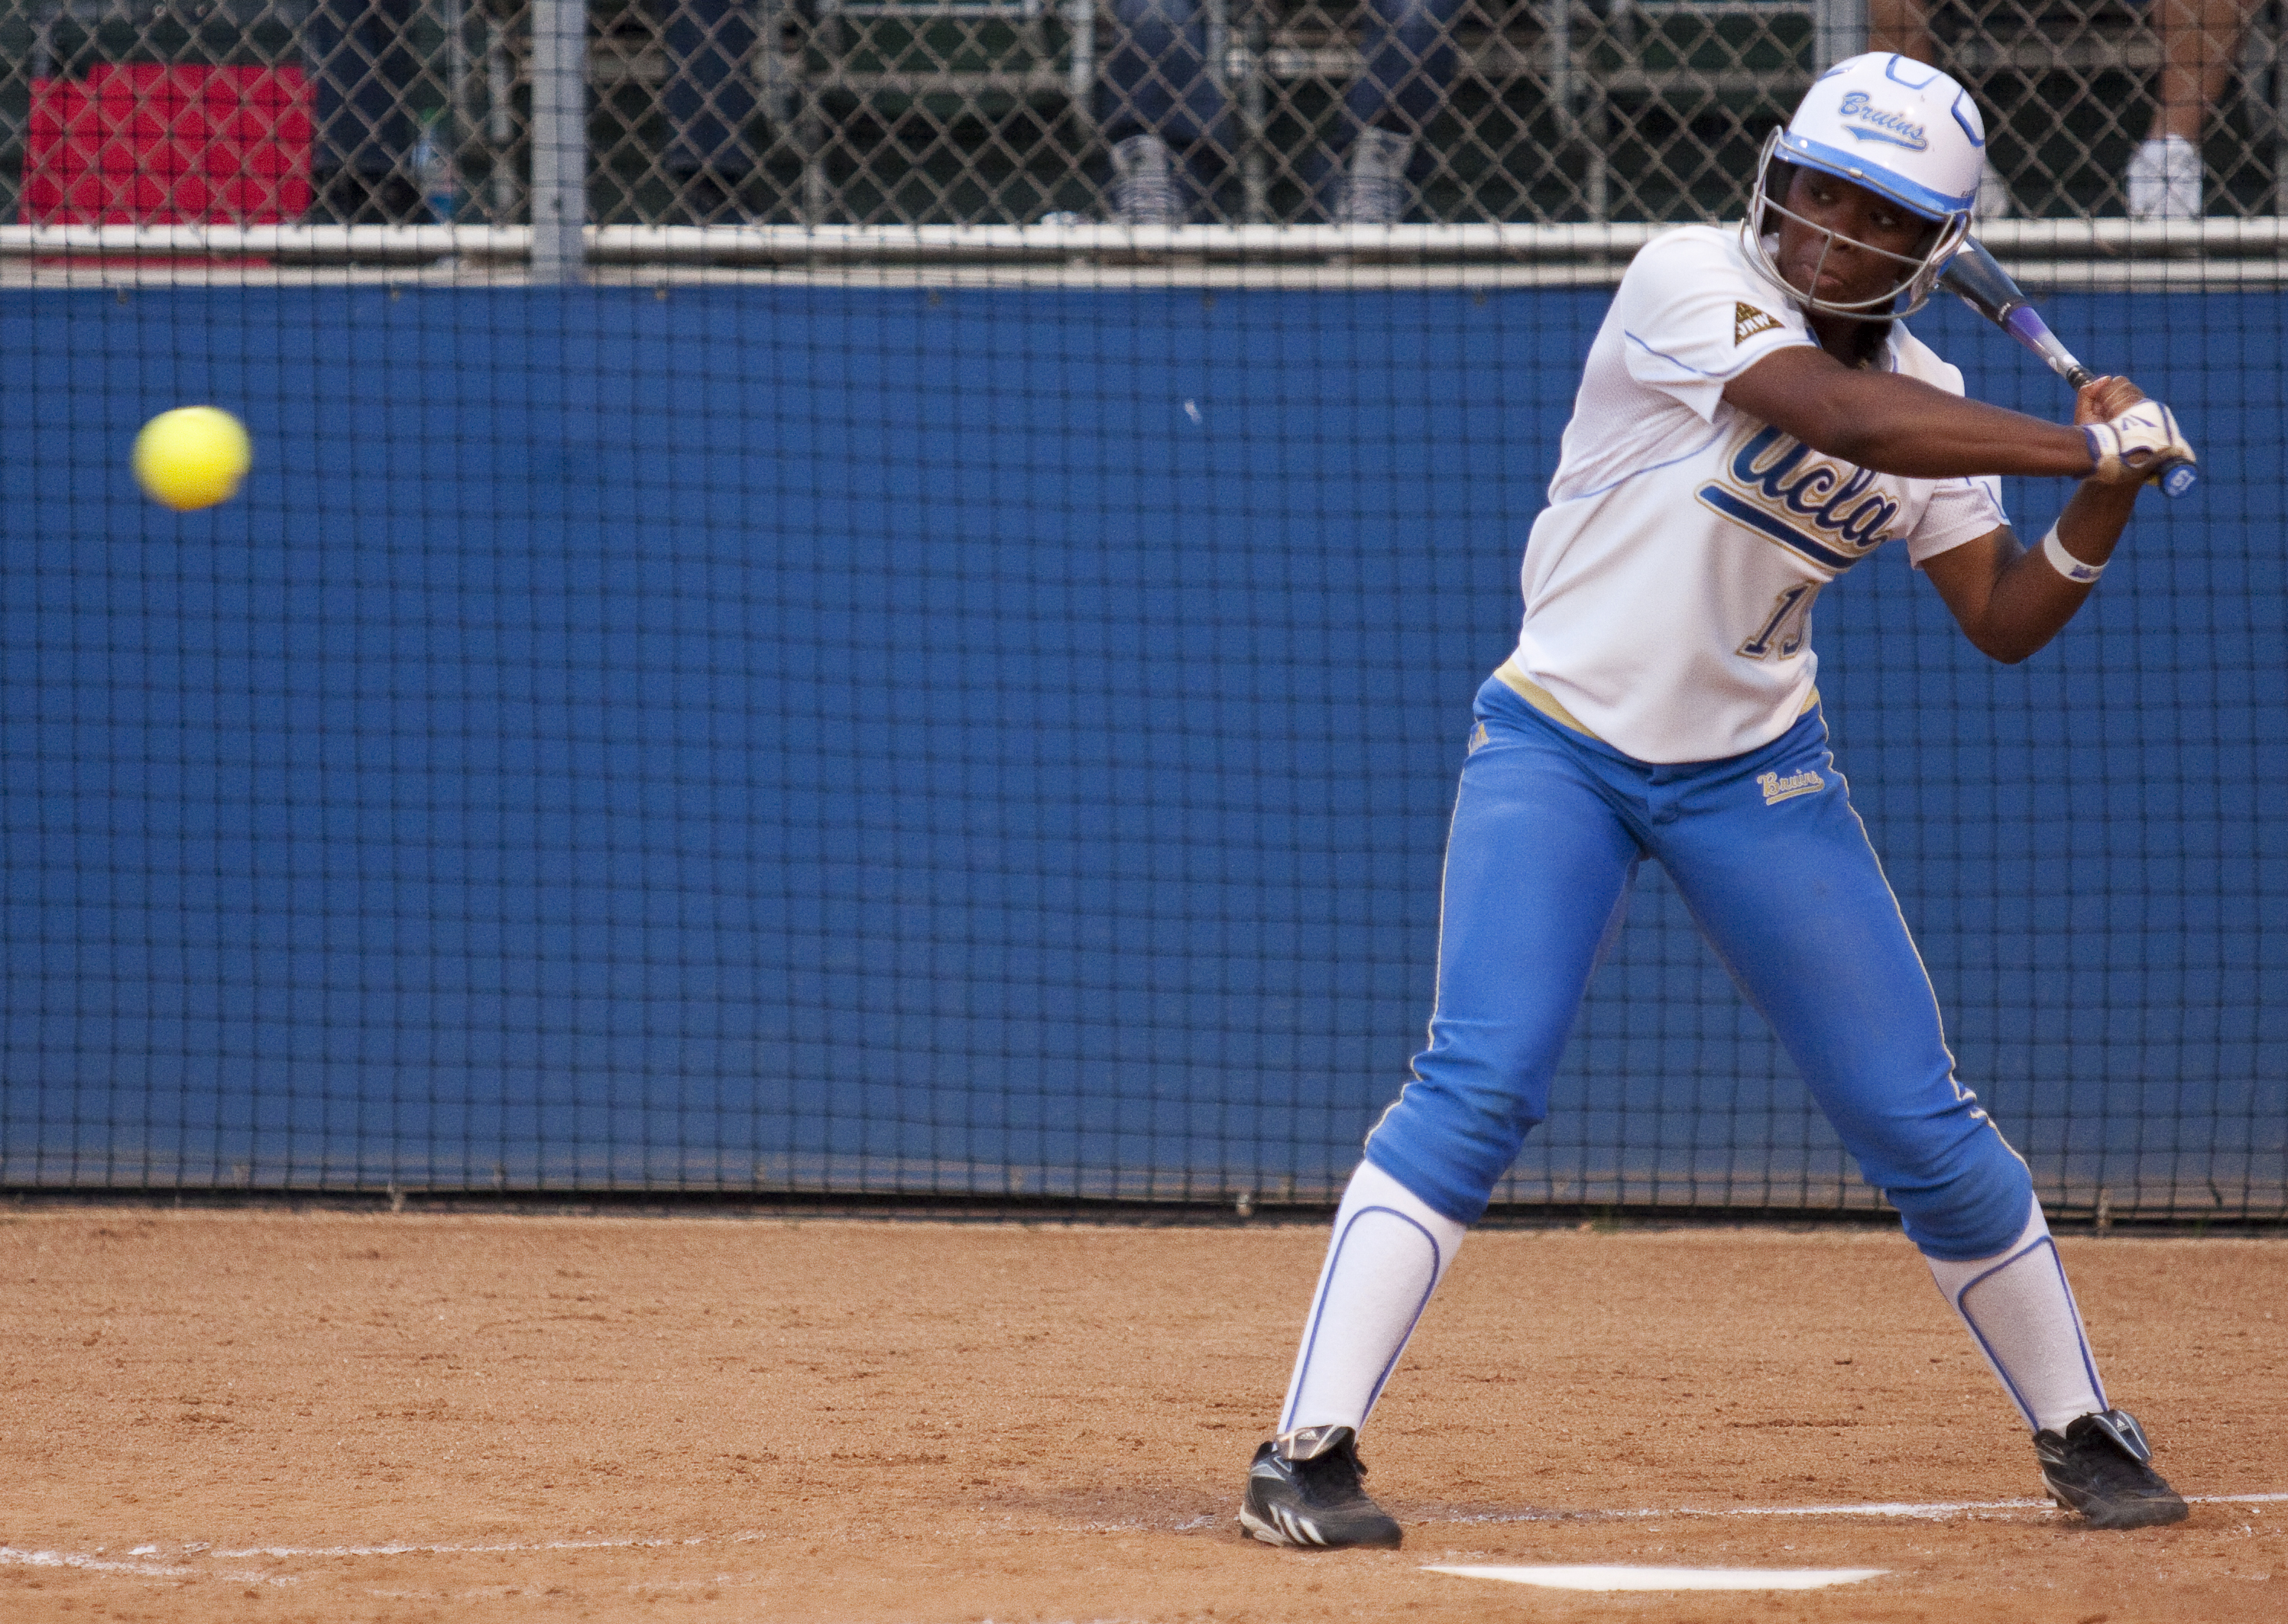 Junior outfielder B.B. Bates hits a two-out, two-run homer in UCLA's 8-2 loss to Oregon. Bates and UCLA are set to host an NCAA Regional this weekend.